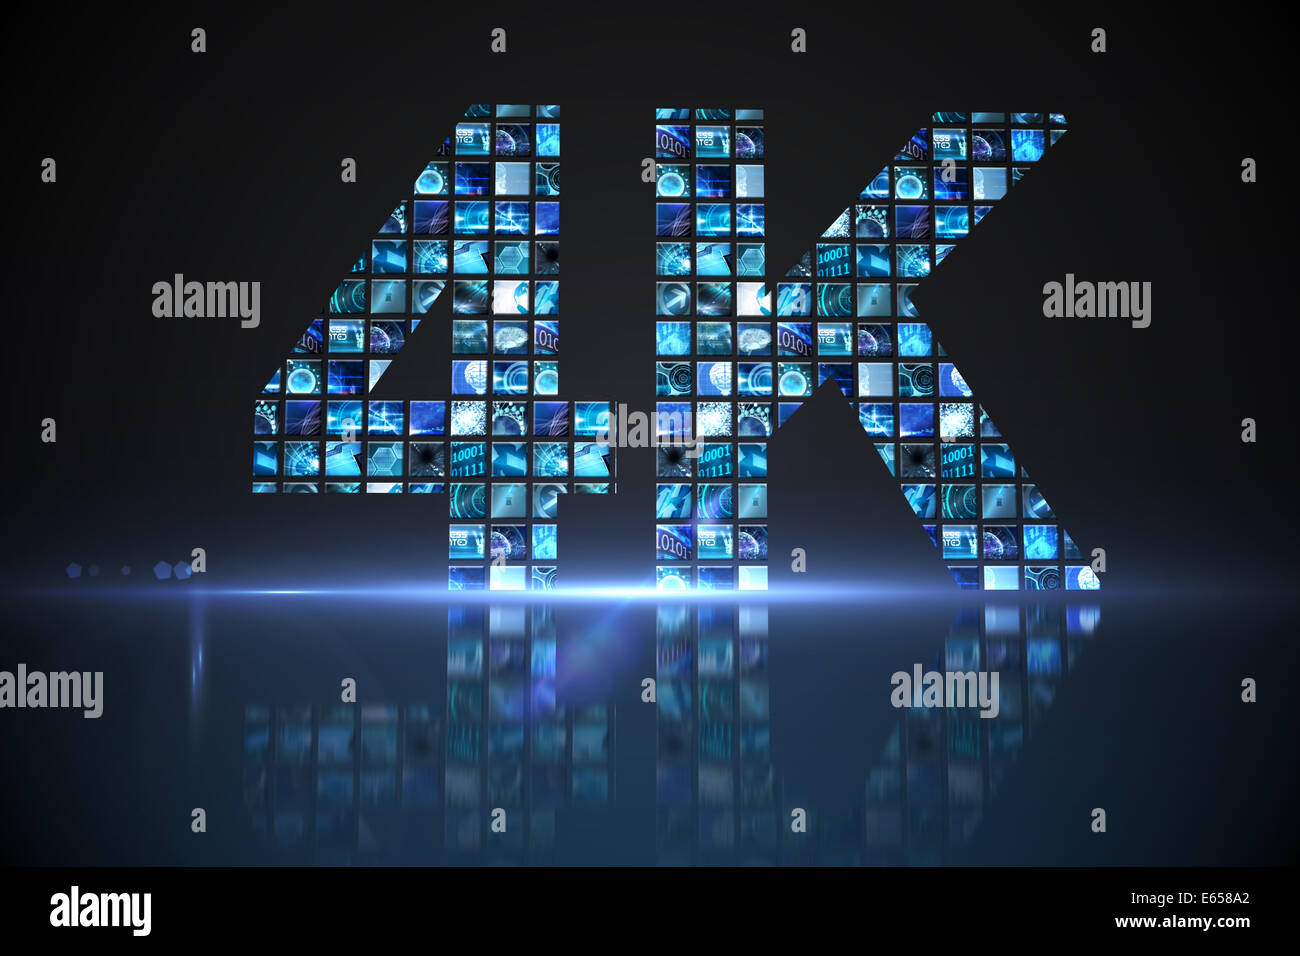 4k made of digital screens in blue - Stock Image